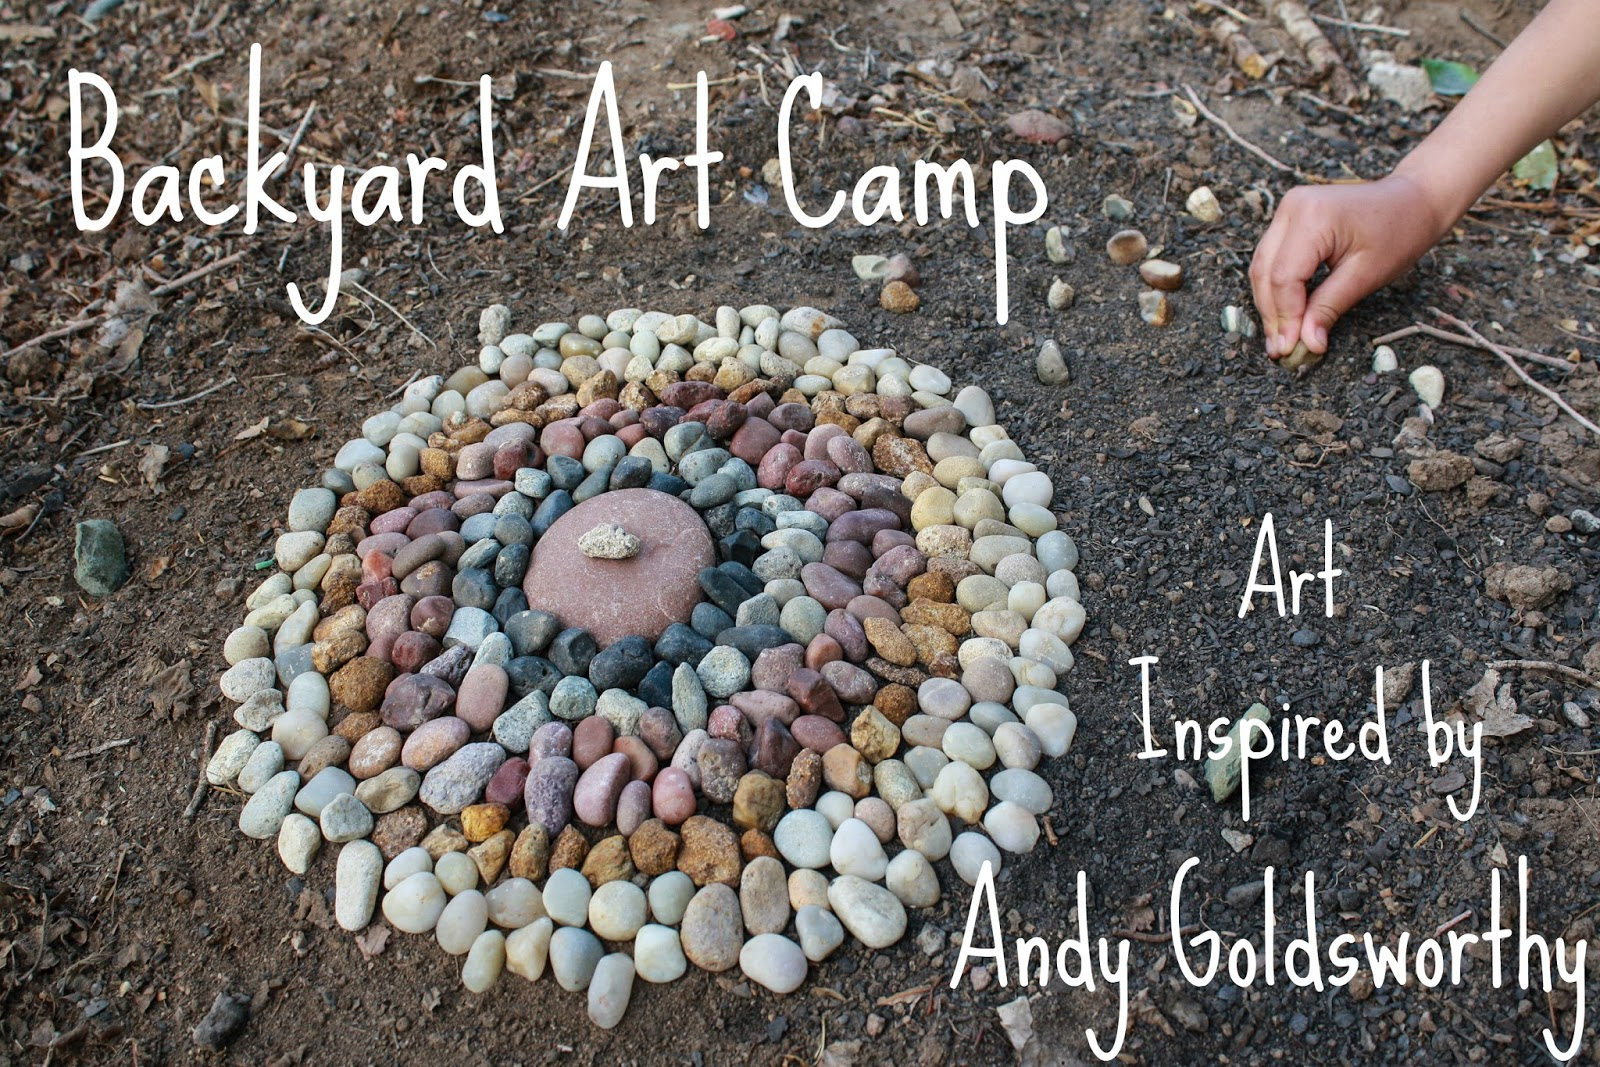 simple things notebook backyard art camp andy goldsworthy